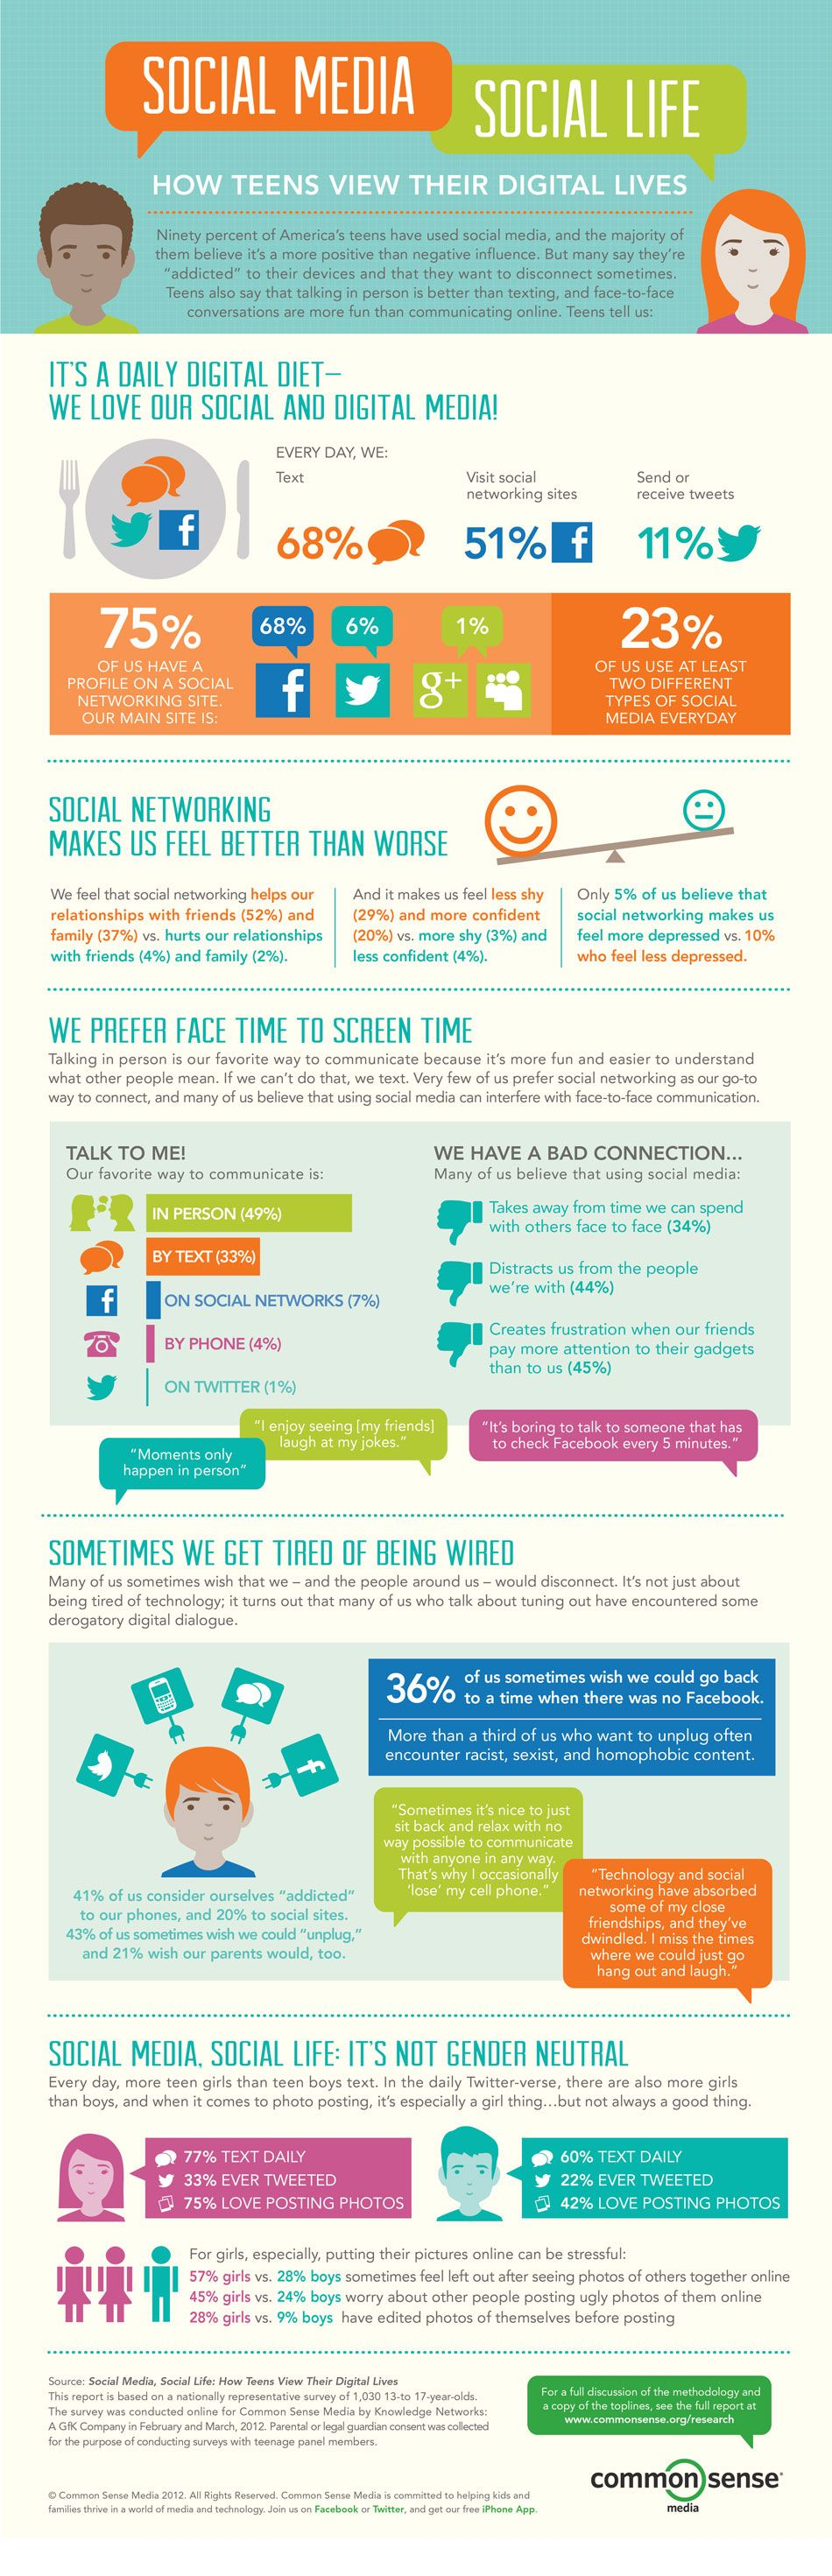 How teens view their digital lives